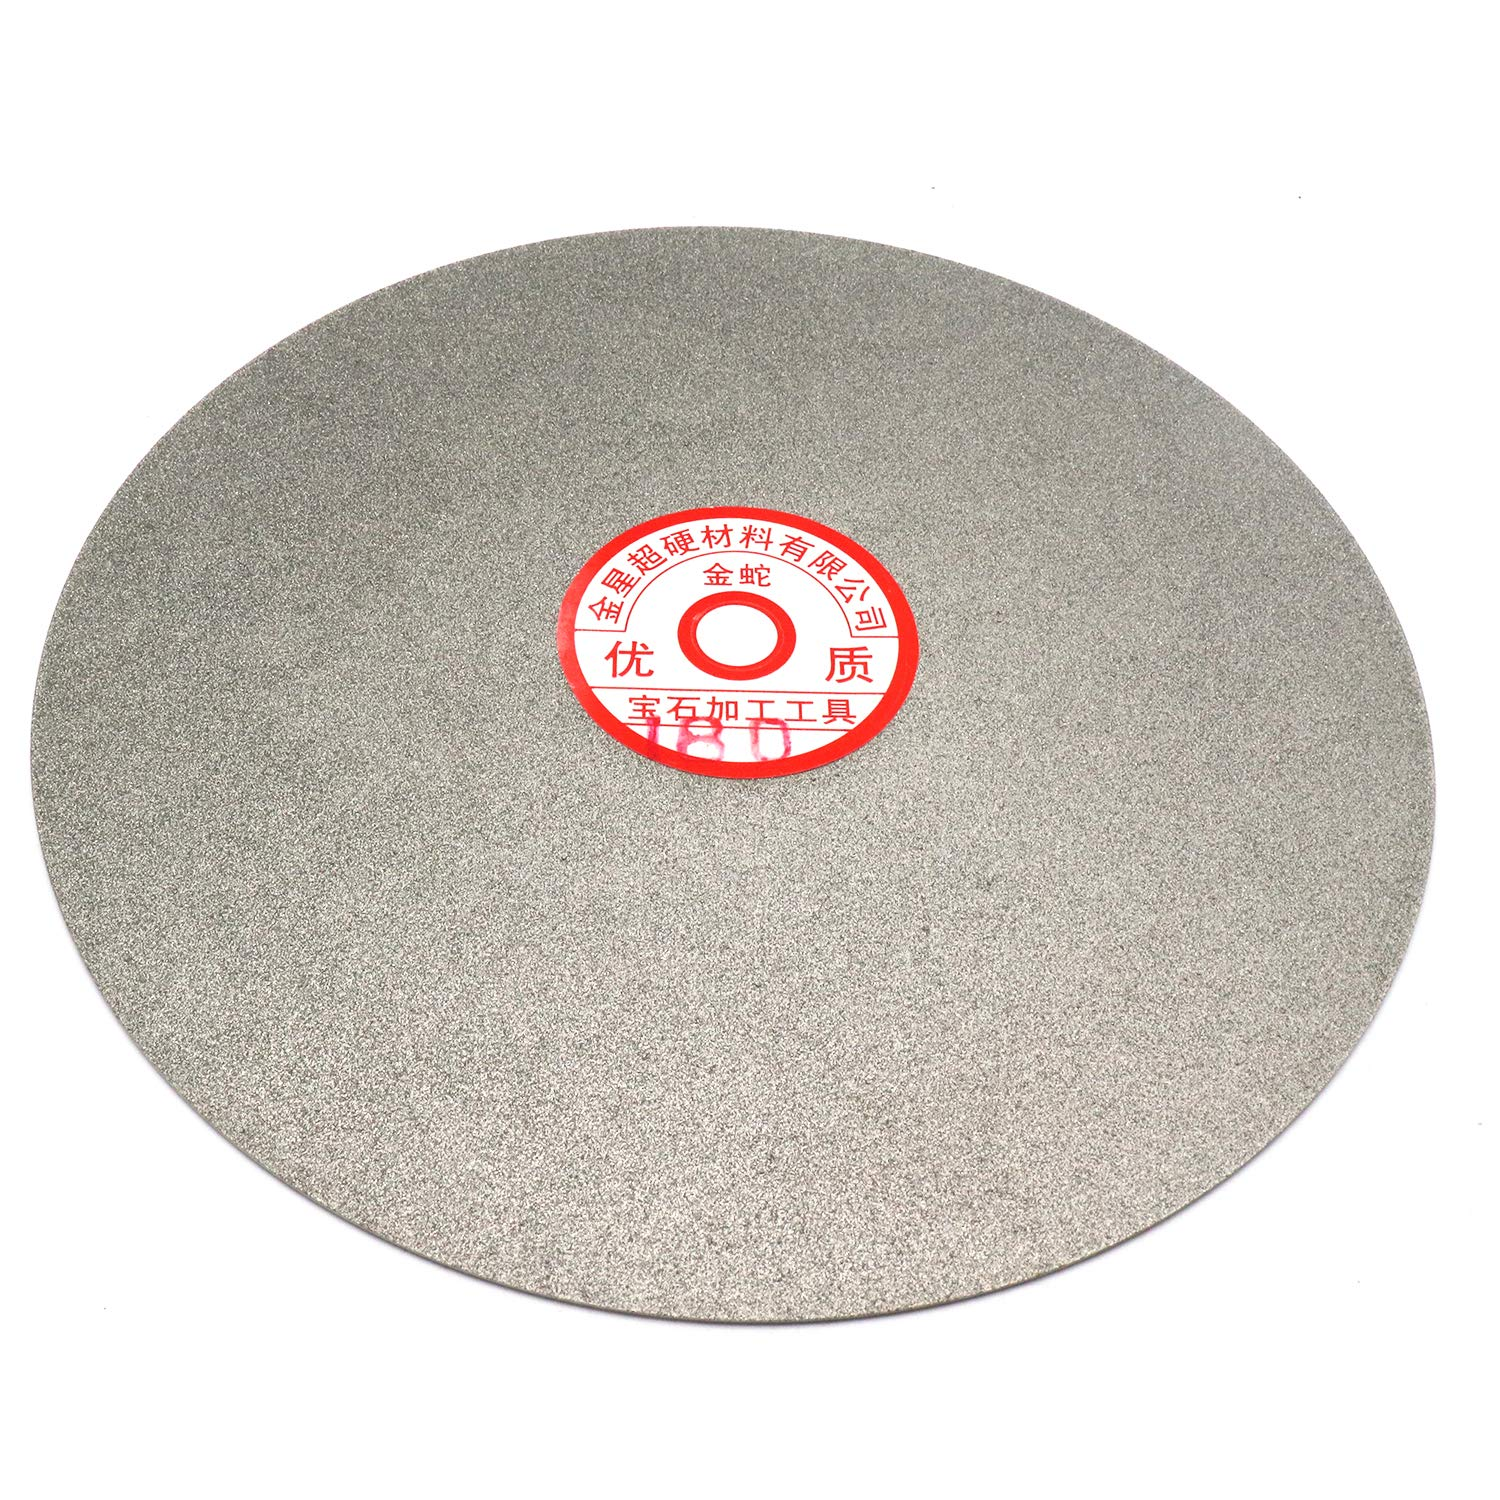 Rannb 180 Grit 8-inch Outside Dia Quality Electroplated Diamond Coated Flat Lap Disk Wheel Lapidary Wheel Disc Grinding Sanding Polishing Disc